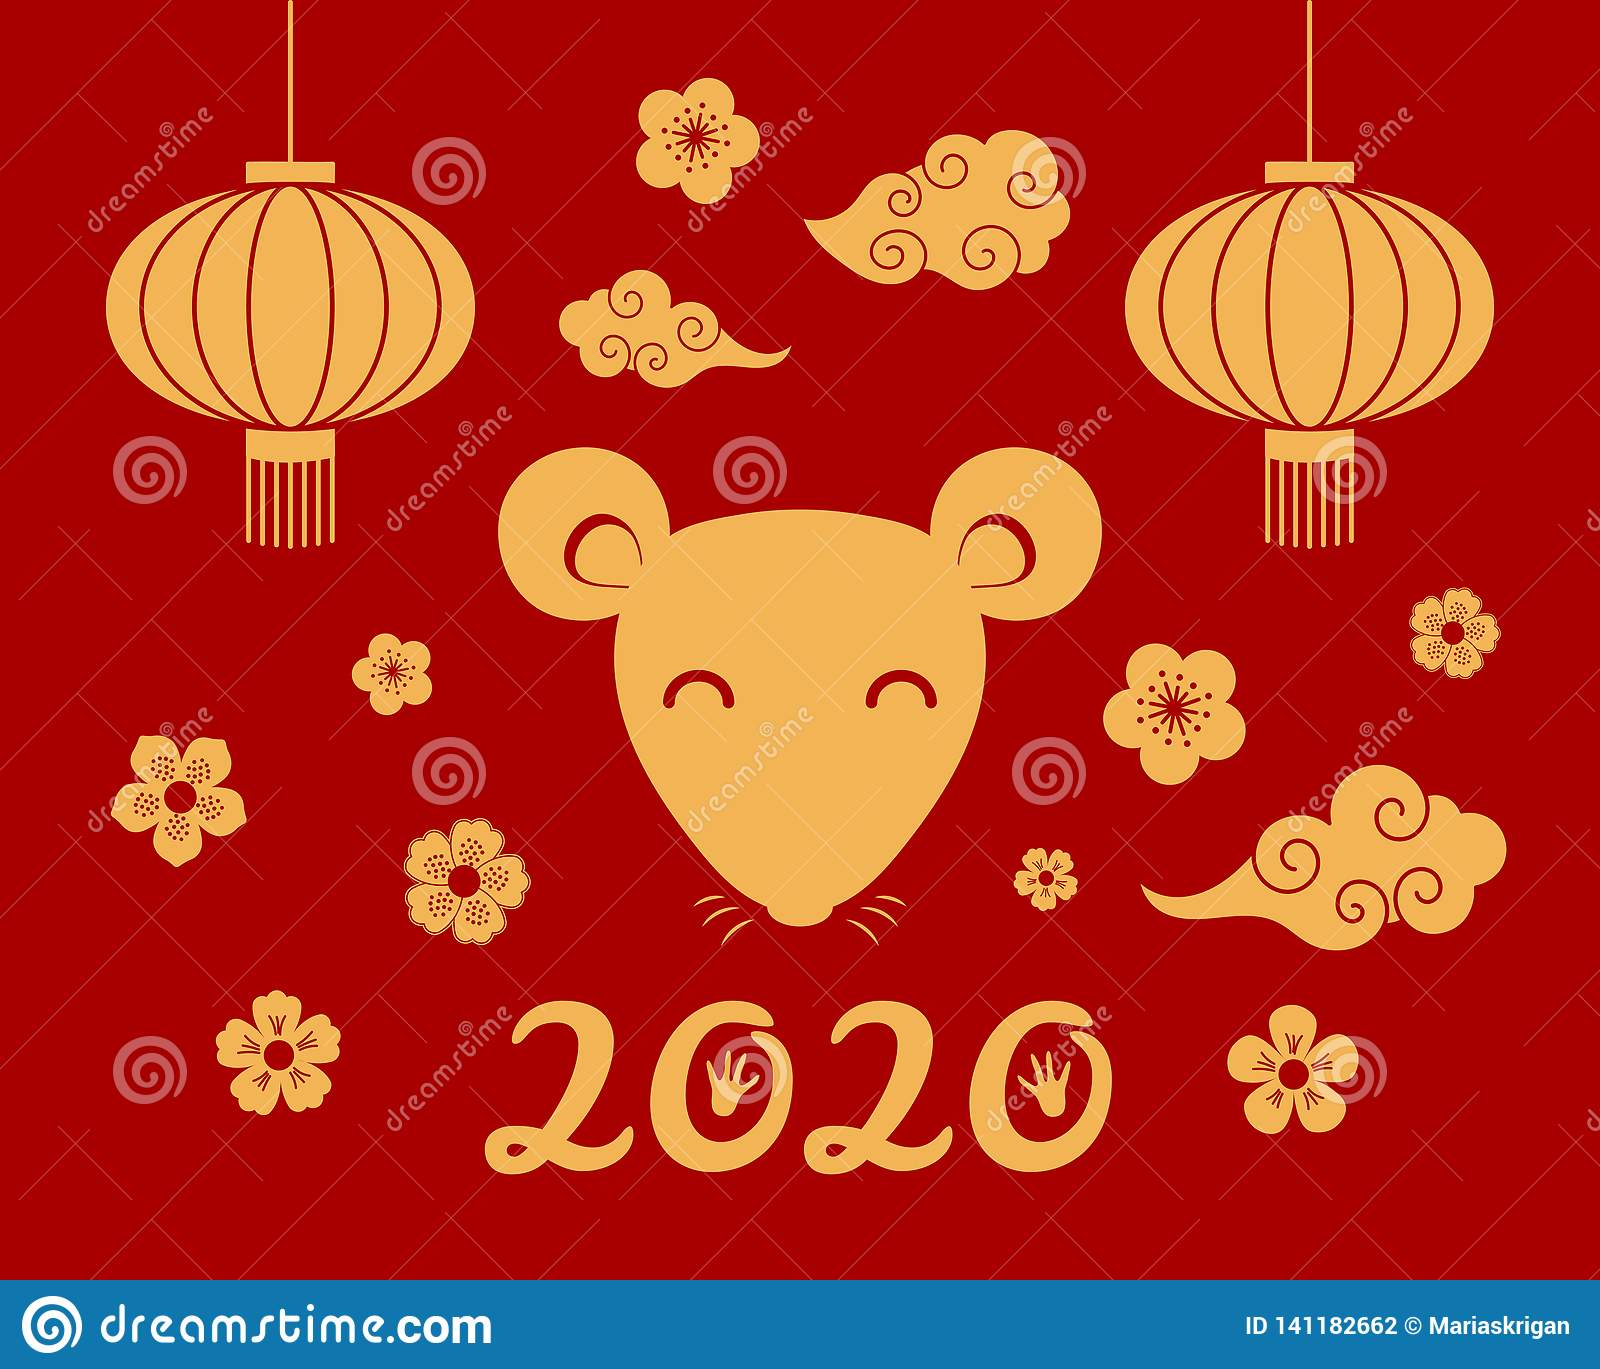 2020 Chinese New Year.2020 Chinese New Year Card Stock Vector Illustration Of